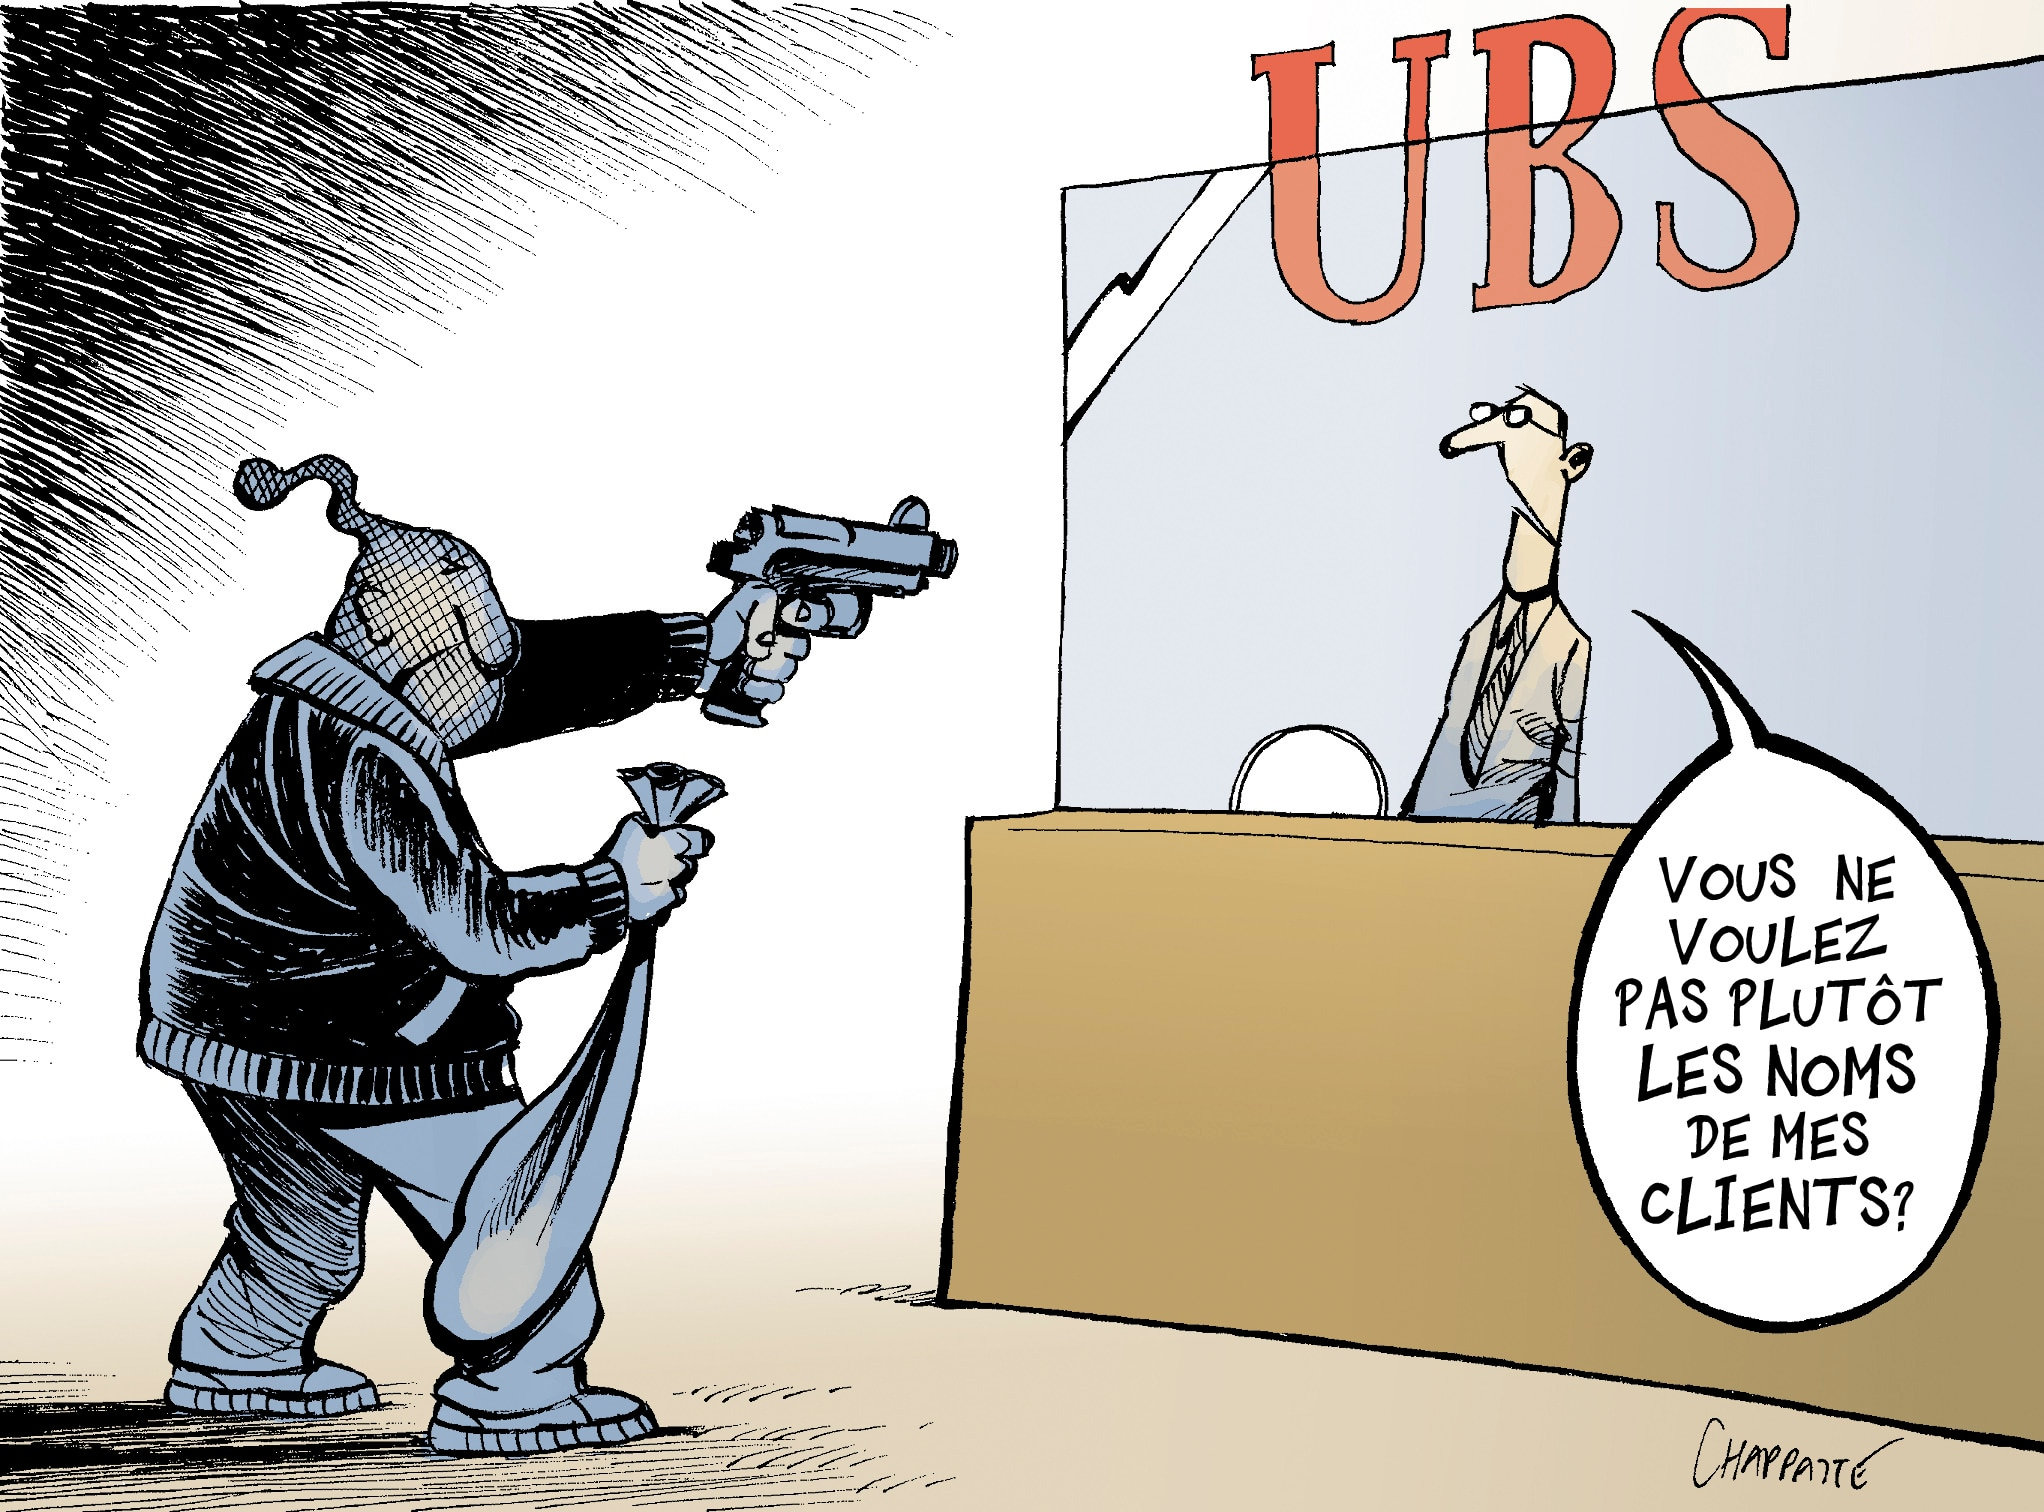 "August 16, 2009. Swiss bank UBS agreed to hand over to the American authorities lists of clients suspected of having evaded US taxes. ""Wouldn't you rather have the names of my clients?"""